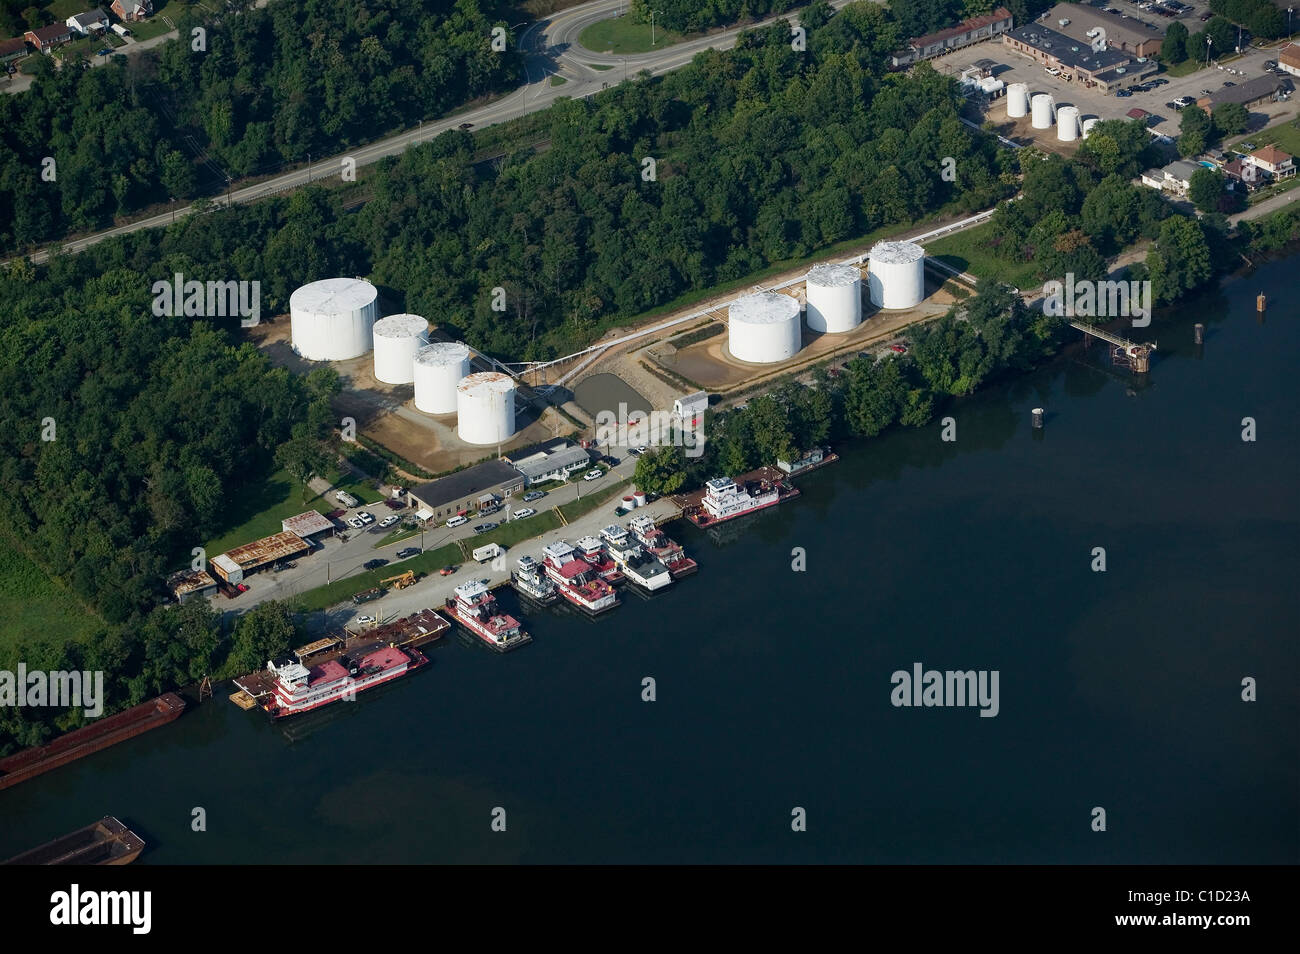 aerial view above Consol Energy tug boats docked Manongahela river Pennsylvania - Stock Image